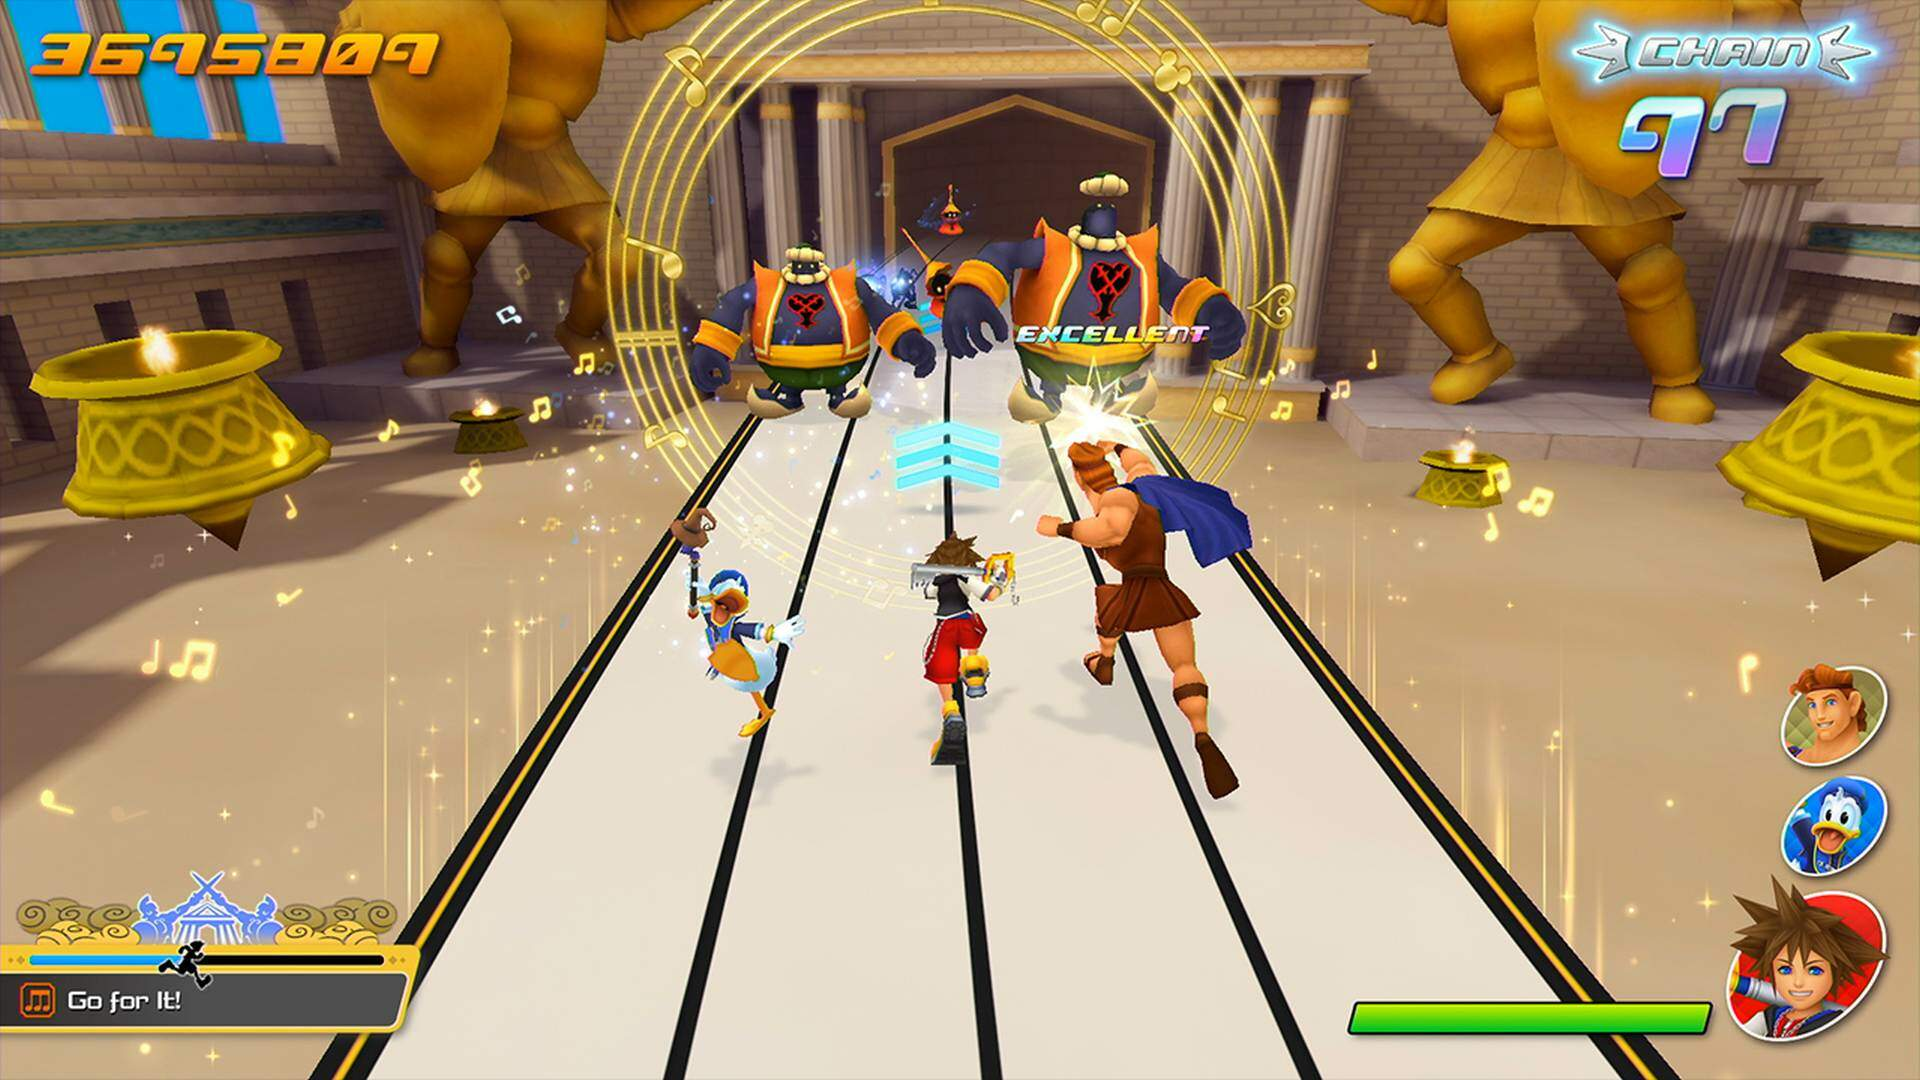 Kingdom Hearts: Melody of Memory Is a Rhythm Game Coming to Consoles This Year